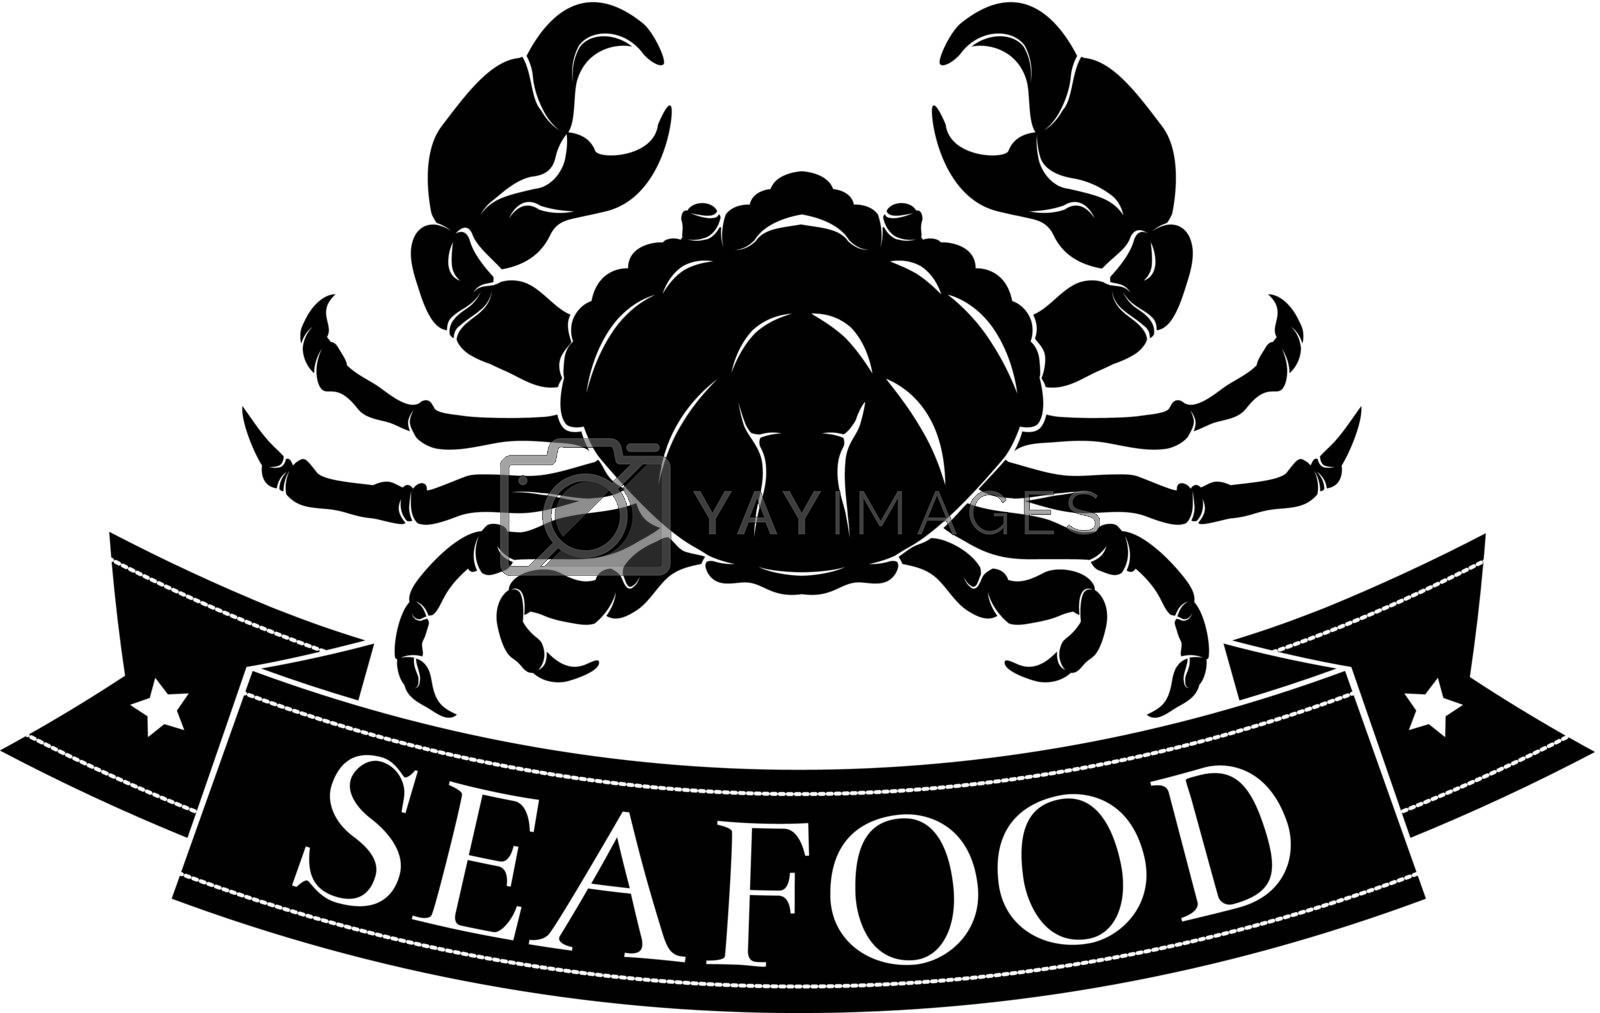 Crab or seafood food icon of a crab and banner reading seafood